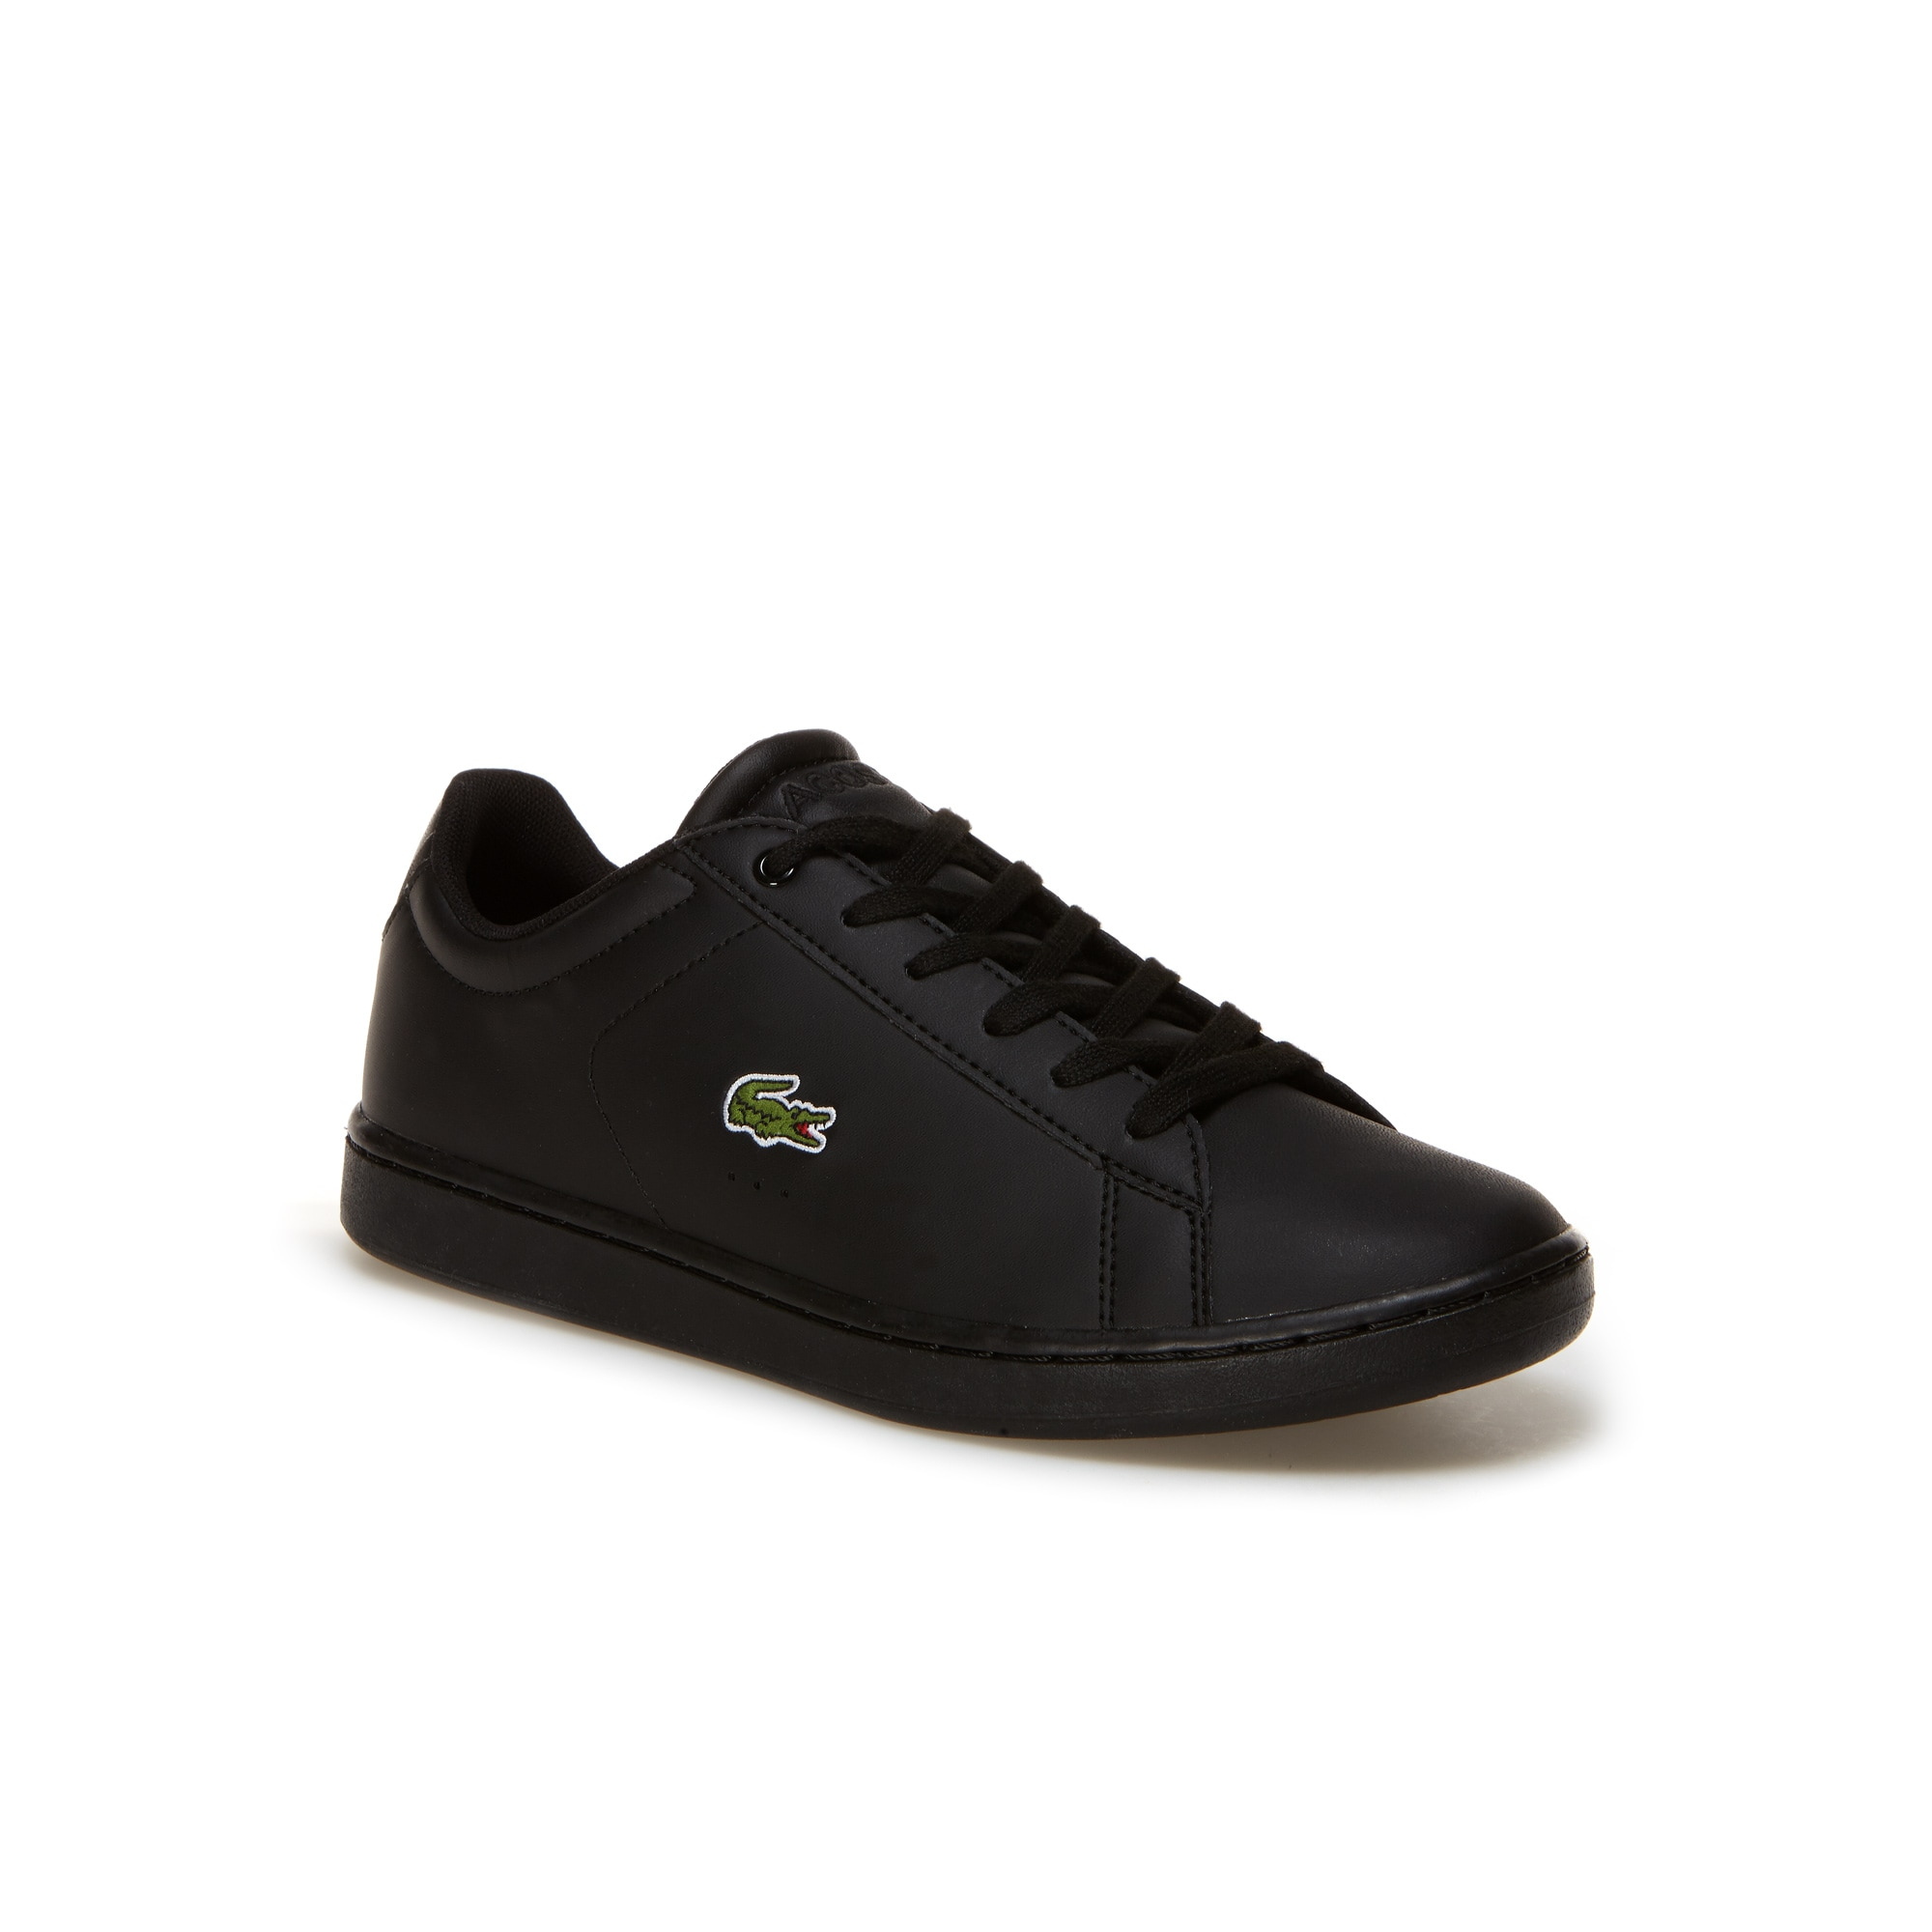 Kids' Carnaby Evo Leather-look with OrthoLite footbed Trainers